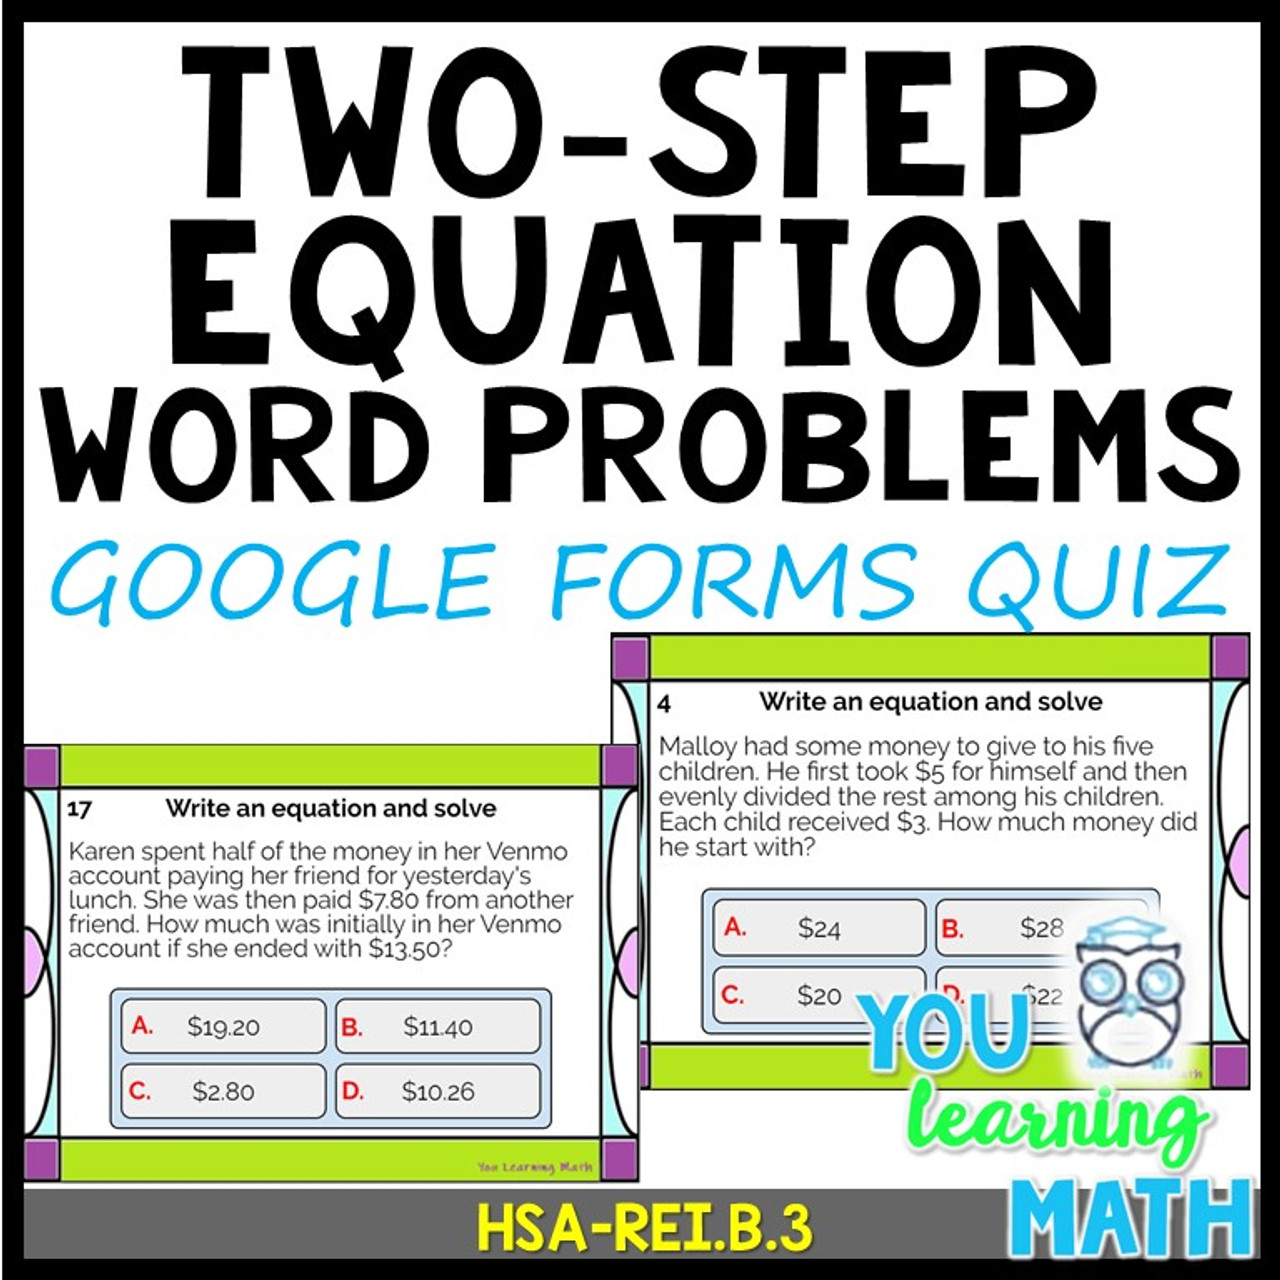 small resolution of Two-Step Equation Word Problems: Google Forms Quiz - 20 Problems - Amped Up  Learning